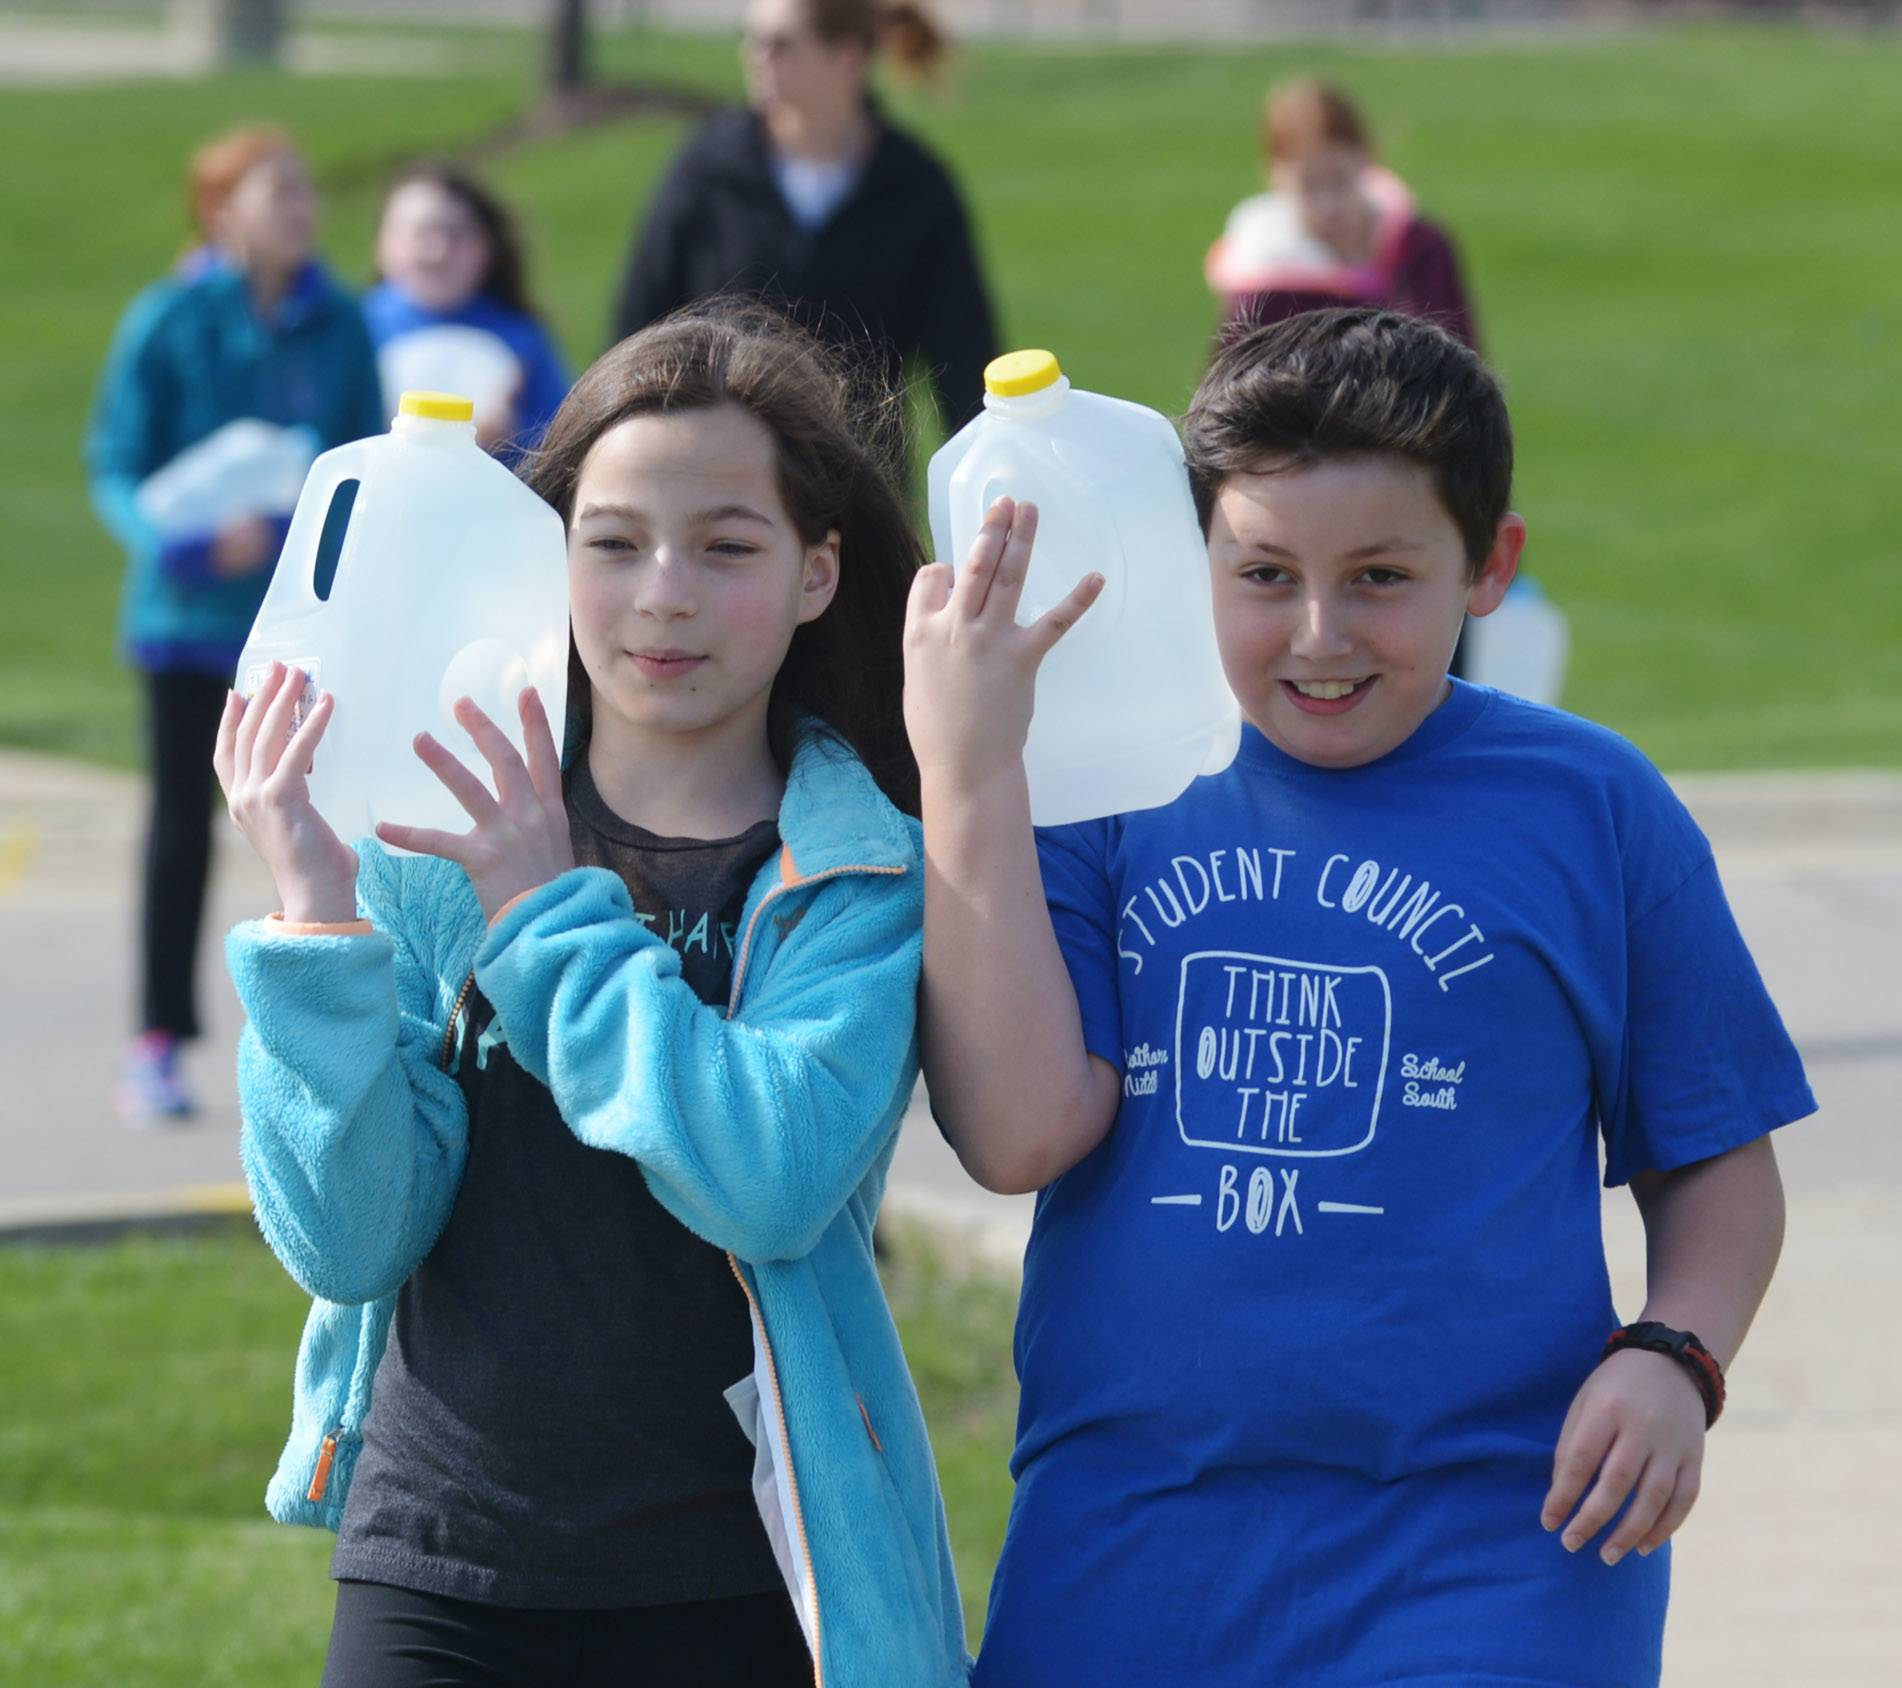 Lia Alterson, left, and Dylan Tehrani are sixth graders from Hawthorn Middle School South in Vernon Hills re-enacting what it's like for women and children in other parts of the world to carry jugs of water great distances because they do not have access water near their homes and villages.